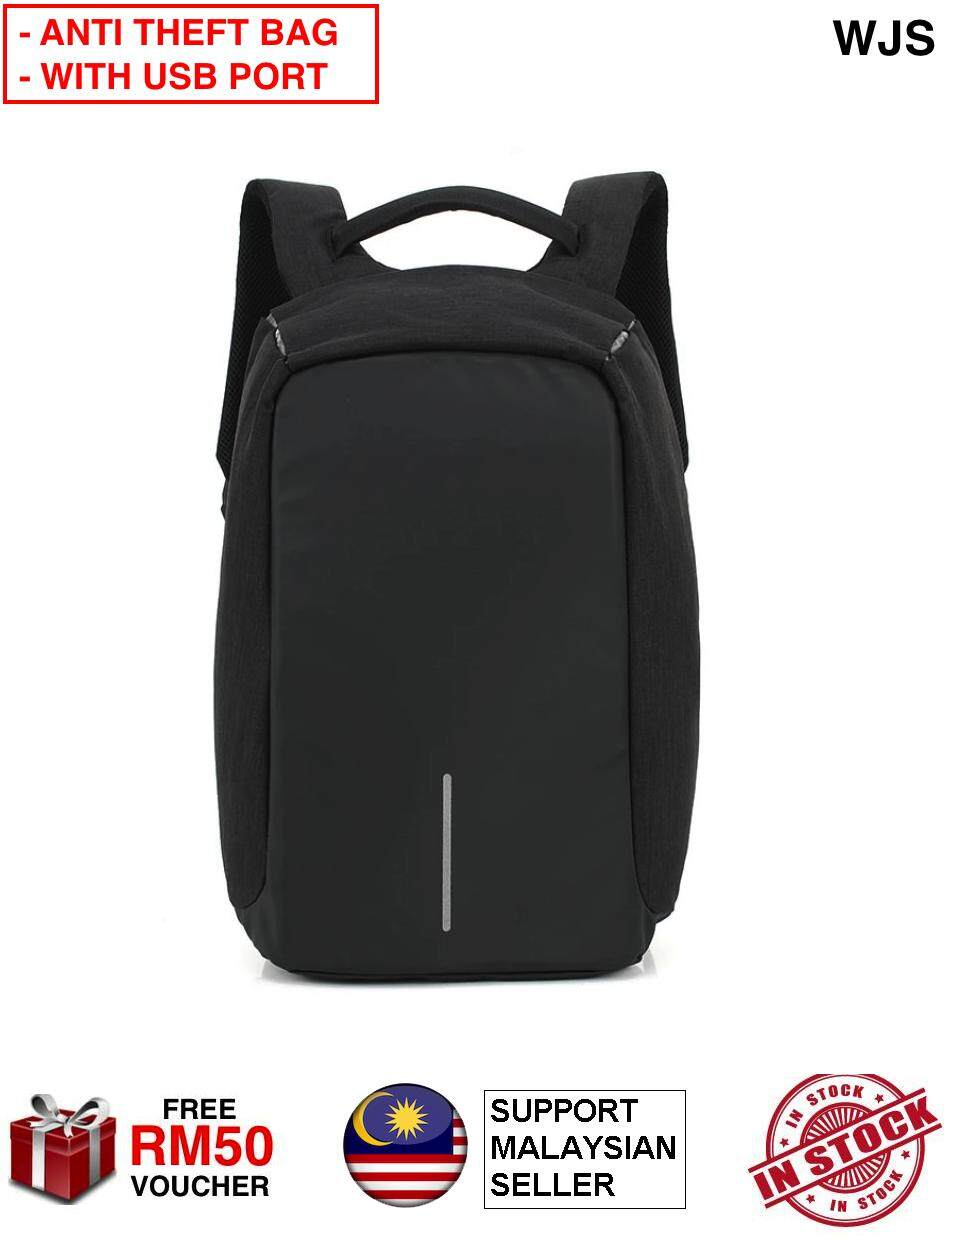 (WITH USB PORT) WJS Anti-Theft Backpack Security Backpack USB Charging Port Business Travel 15.6inch Anti Theft Laptop Bag Water Resistant Scratch Resistant Protection Bag (FREE RM50 VOUCHER)